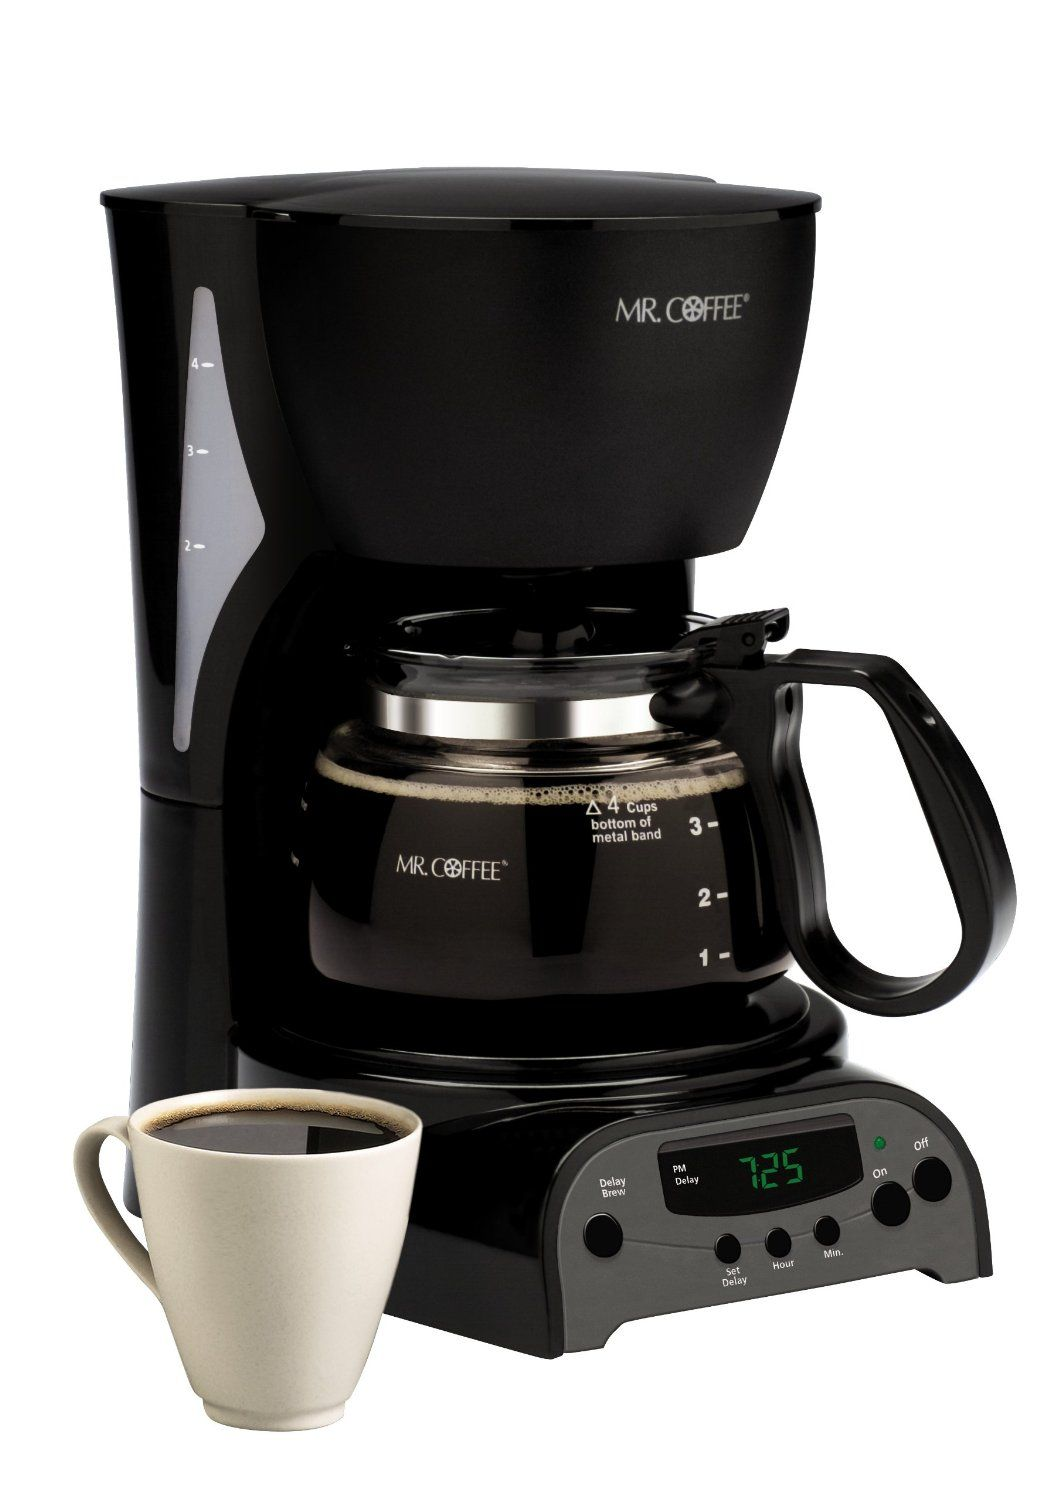 Mr Coffee Drx5 4 Cup Programmable Coffeemaker Black Best Drip Coffee Maker Best Coffee Maker Coffee Maker Reviews